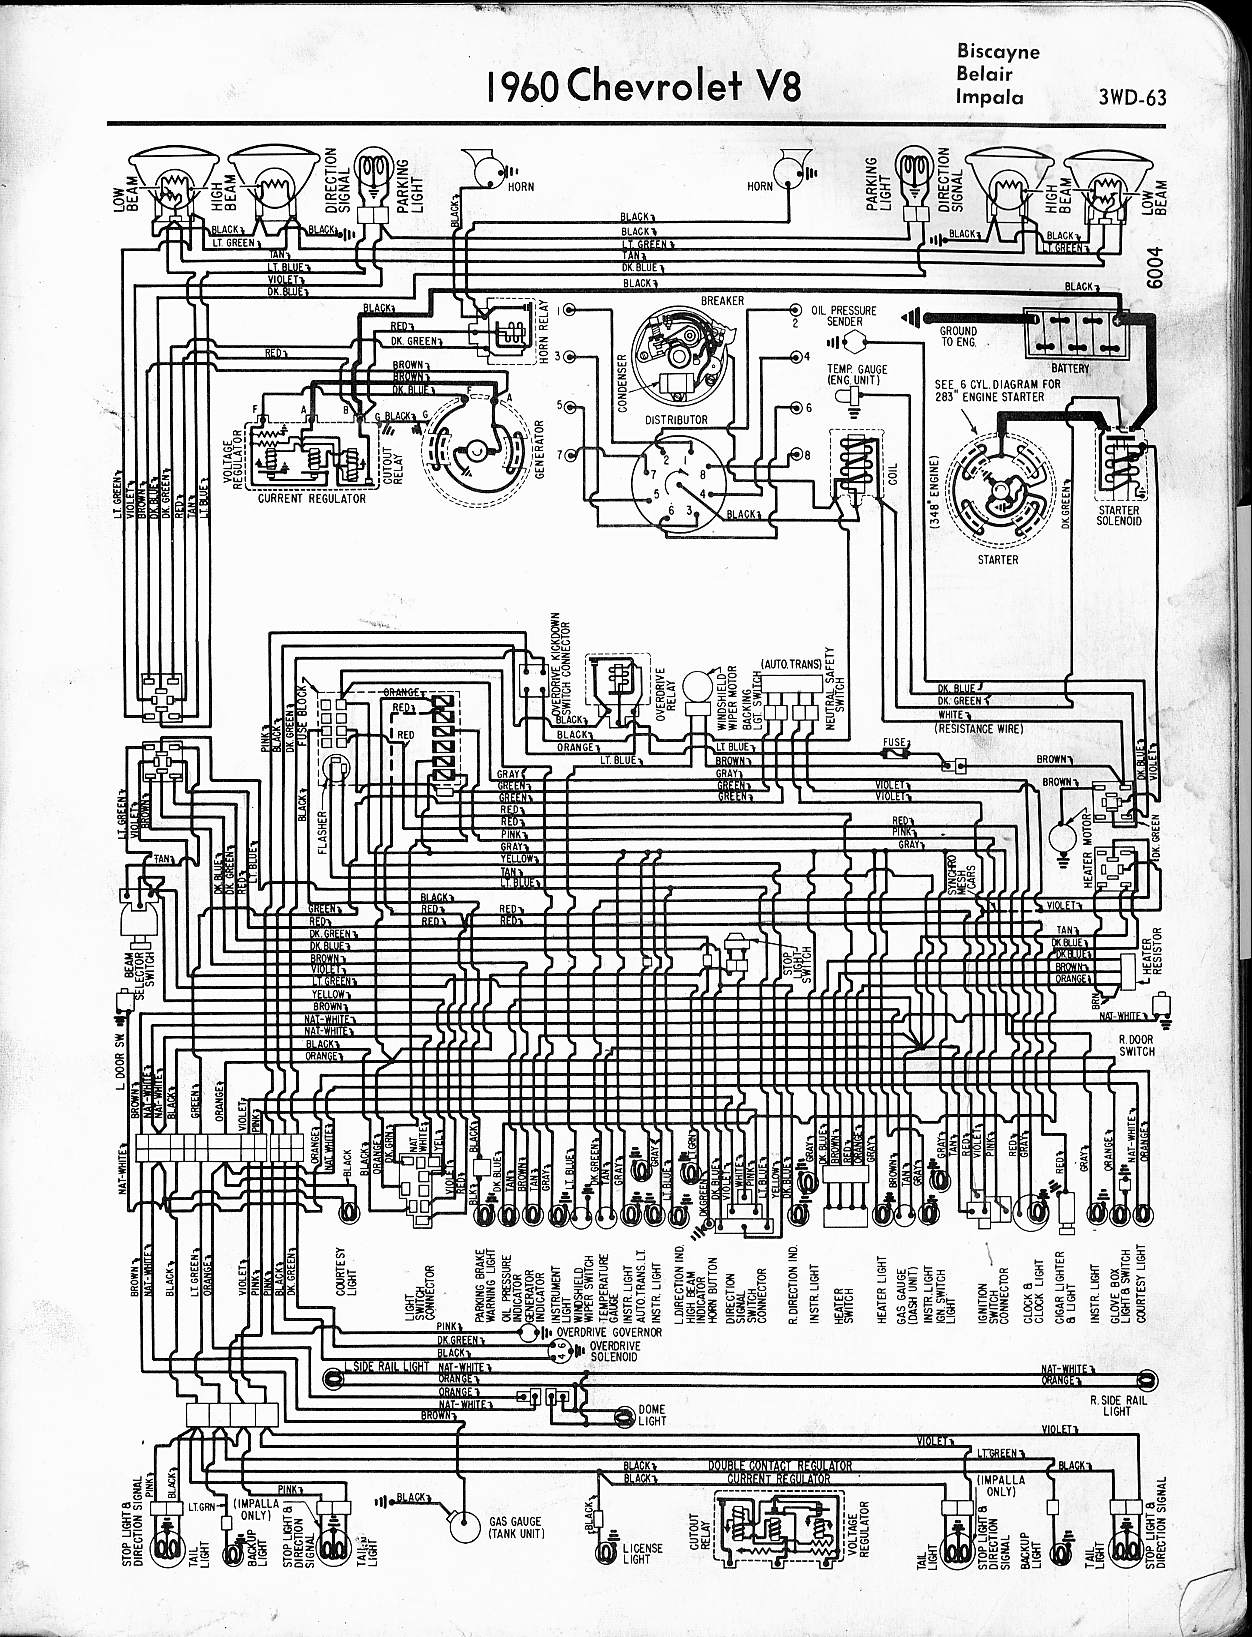 1964 Impala Dash Harness Modern Design Of Wiring Diagram 68 Chevy C10 57 65 Diagrams Rh Oldcarmanualproject Com 1968